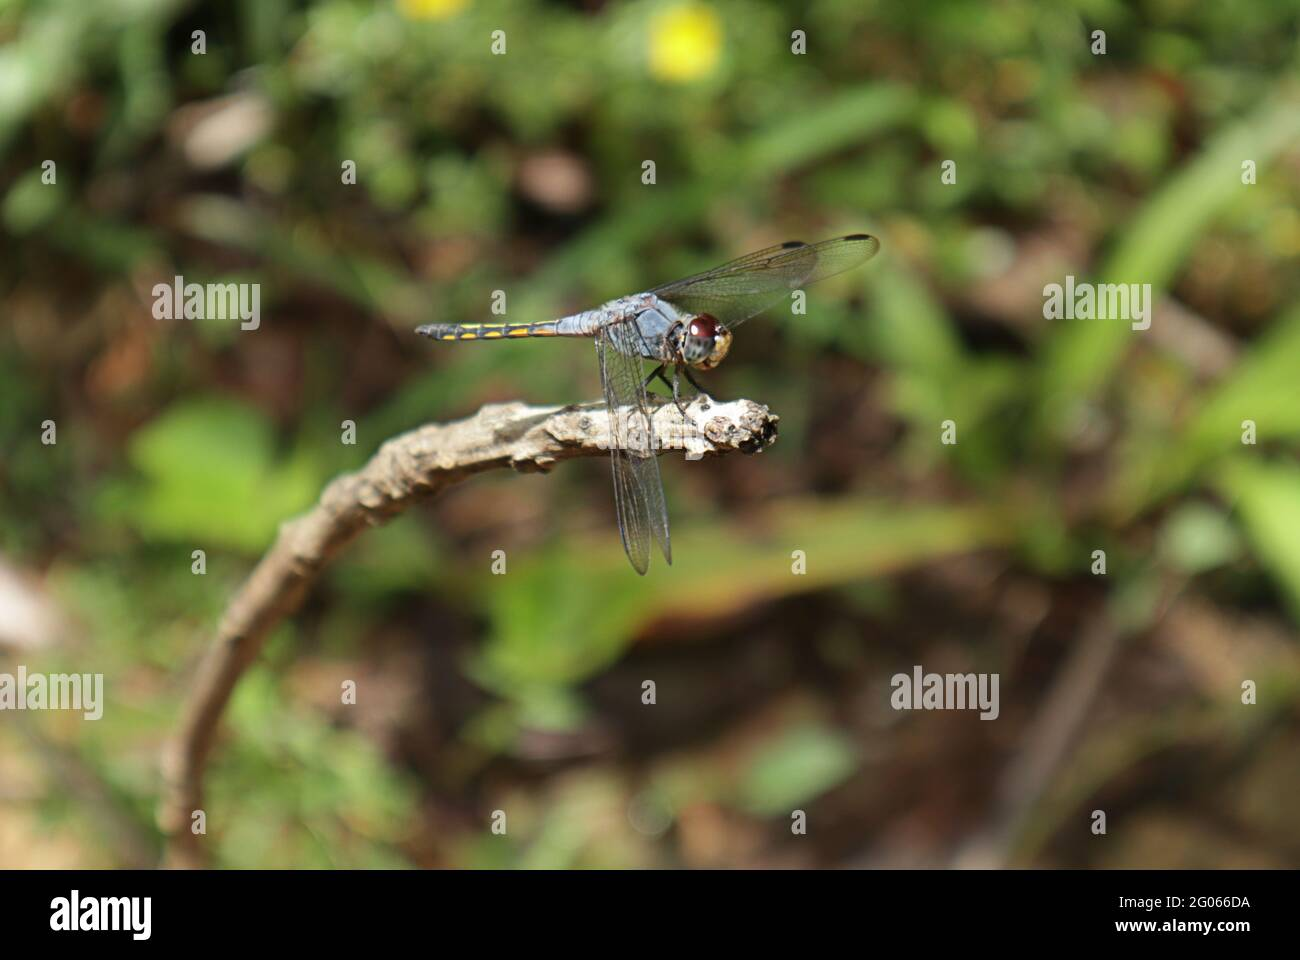 Side view of a violet marked darter dragonfly on top of a dry stick Stock Photo